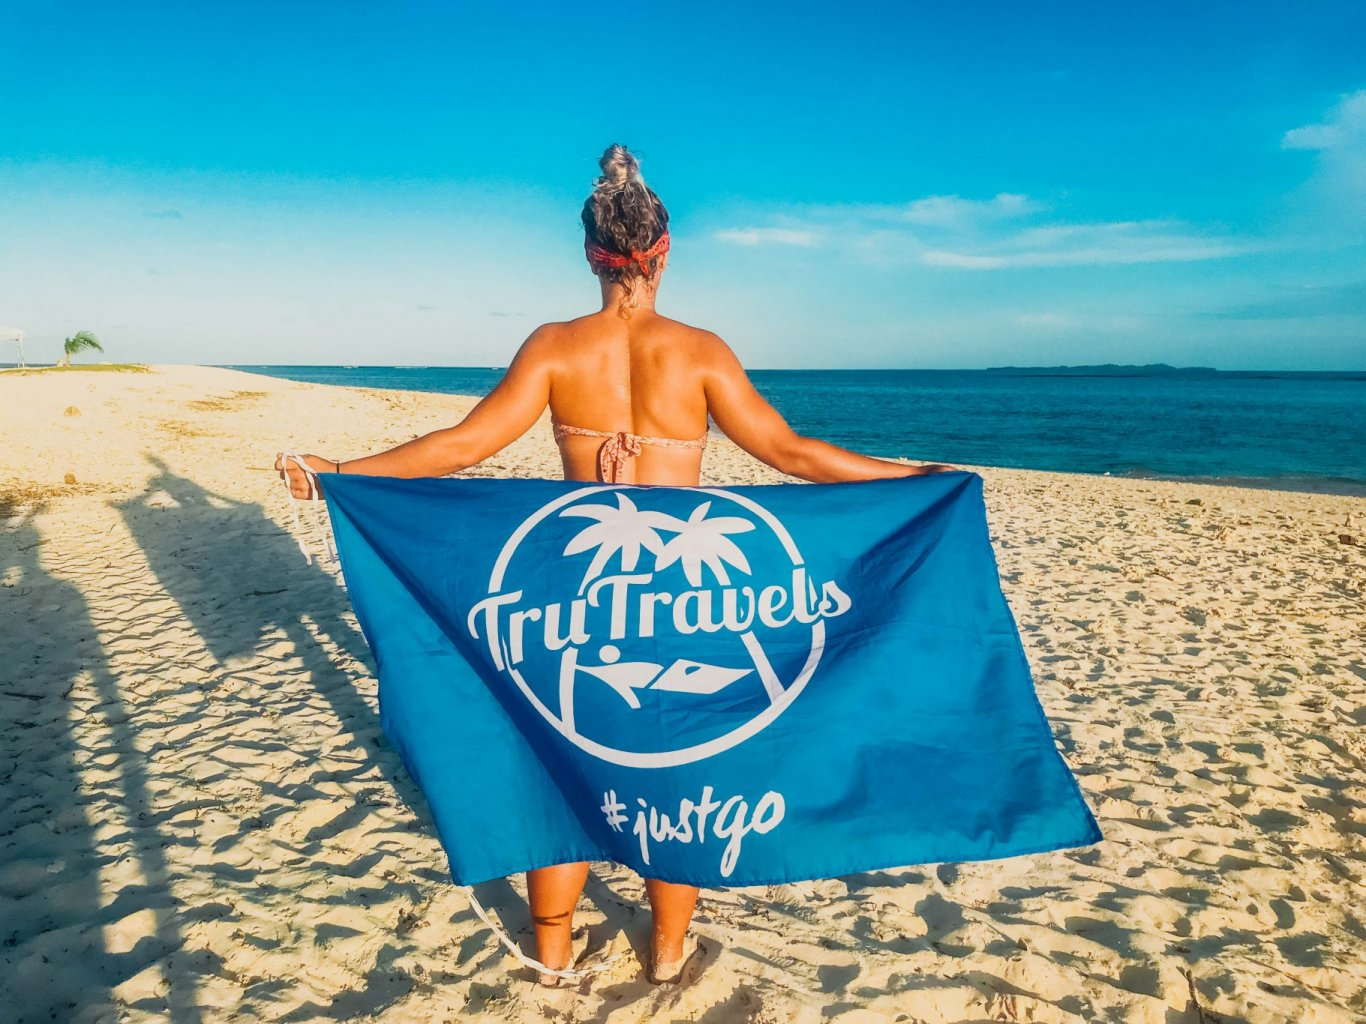 Girl on beach with TruTravels flag - Philippines